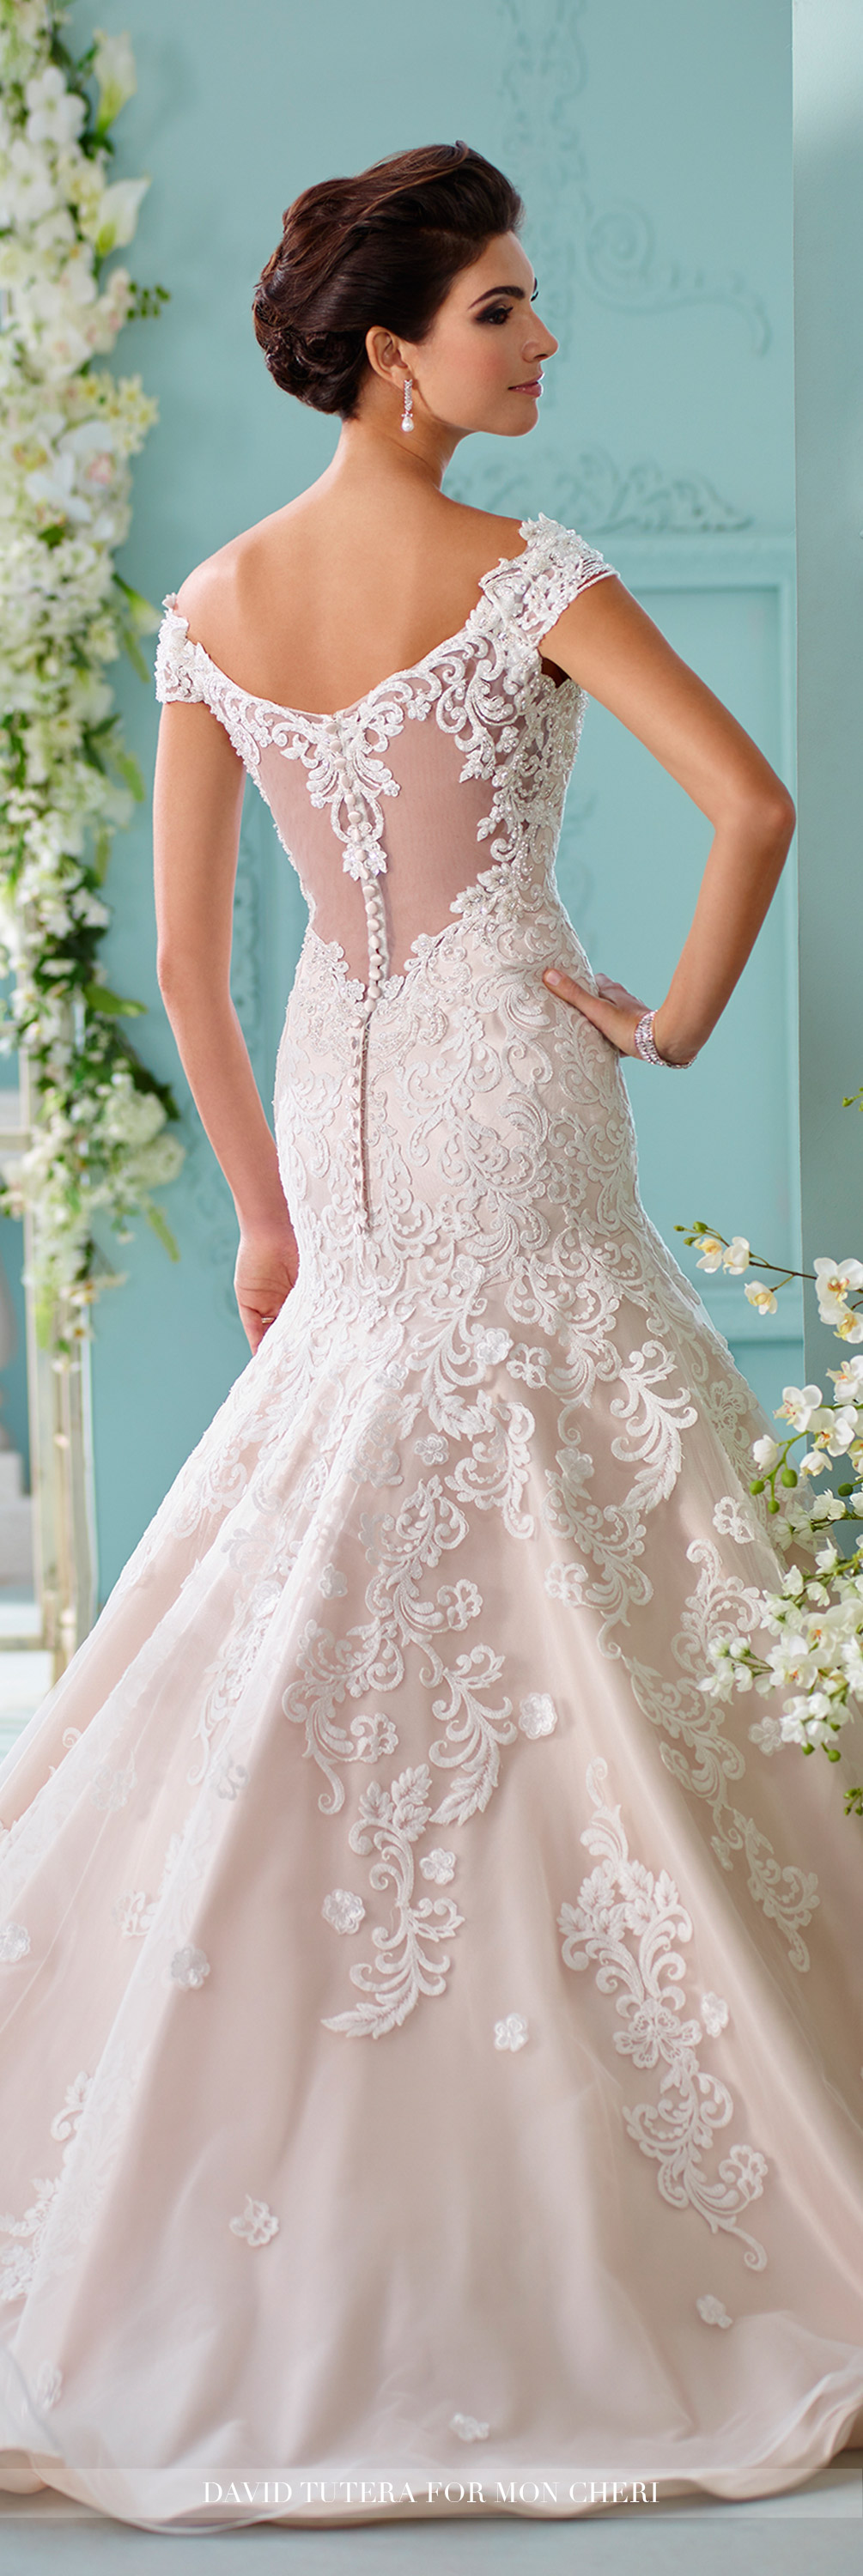 Lace offtheshoulder cap sleeve mermaid wedding dress sialia